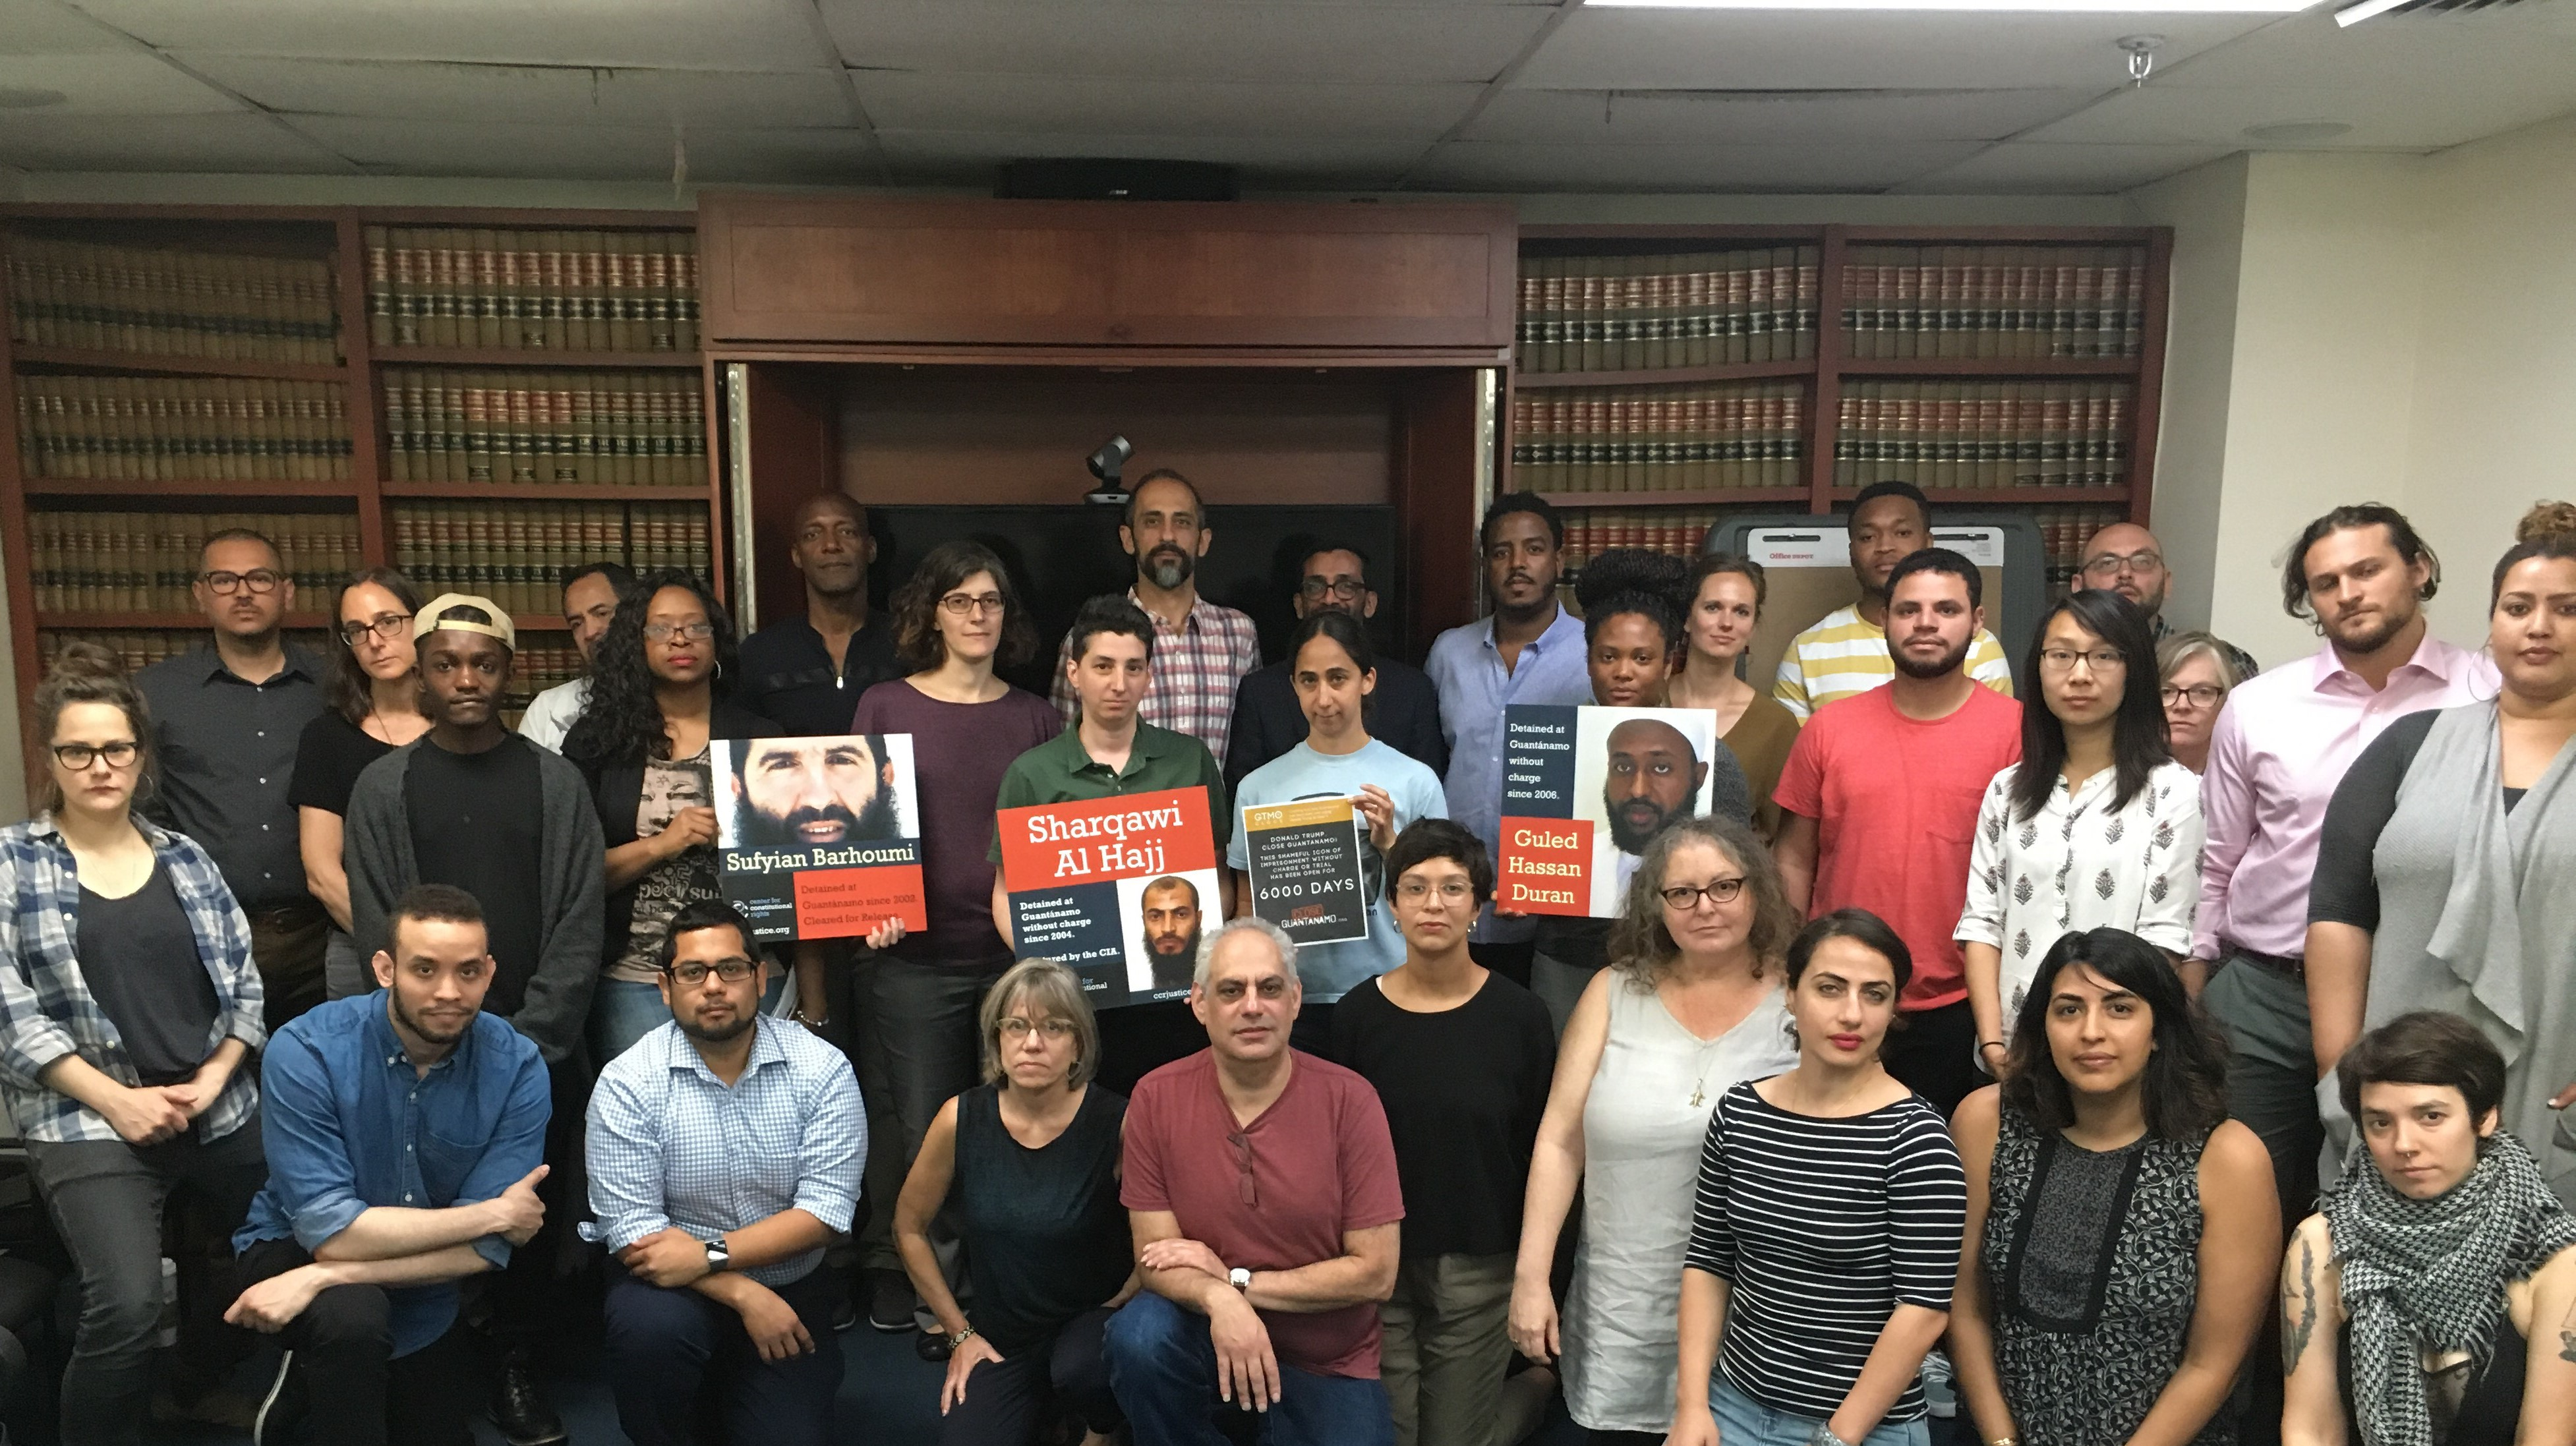 "A great photo of the Center for Constitutional Rights' staff and interns in New York united in calling for the closure of #Guantanamo on its 6,000th day of existence on June 15, 2018. Staff also hold up placards for three prisoners CCR represent: Sufyian Barhoumi, approved for release by a high-level review process under President Obama,but still held, and ""forever prisoners"" Sharqawi al-Hajj and Guled Hassan Duran."